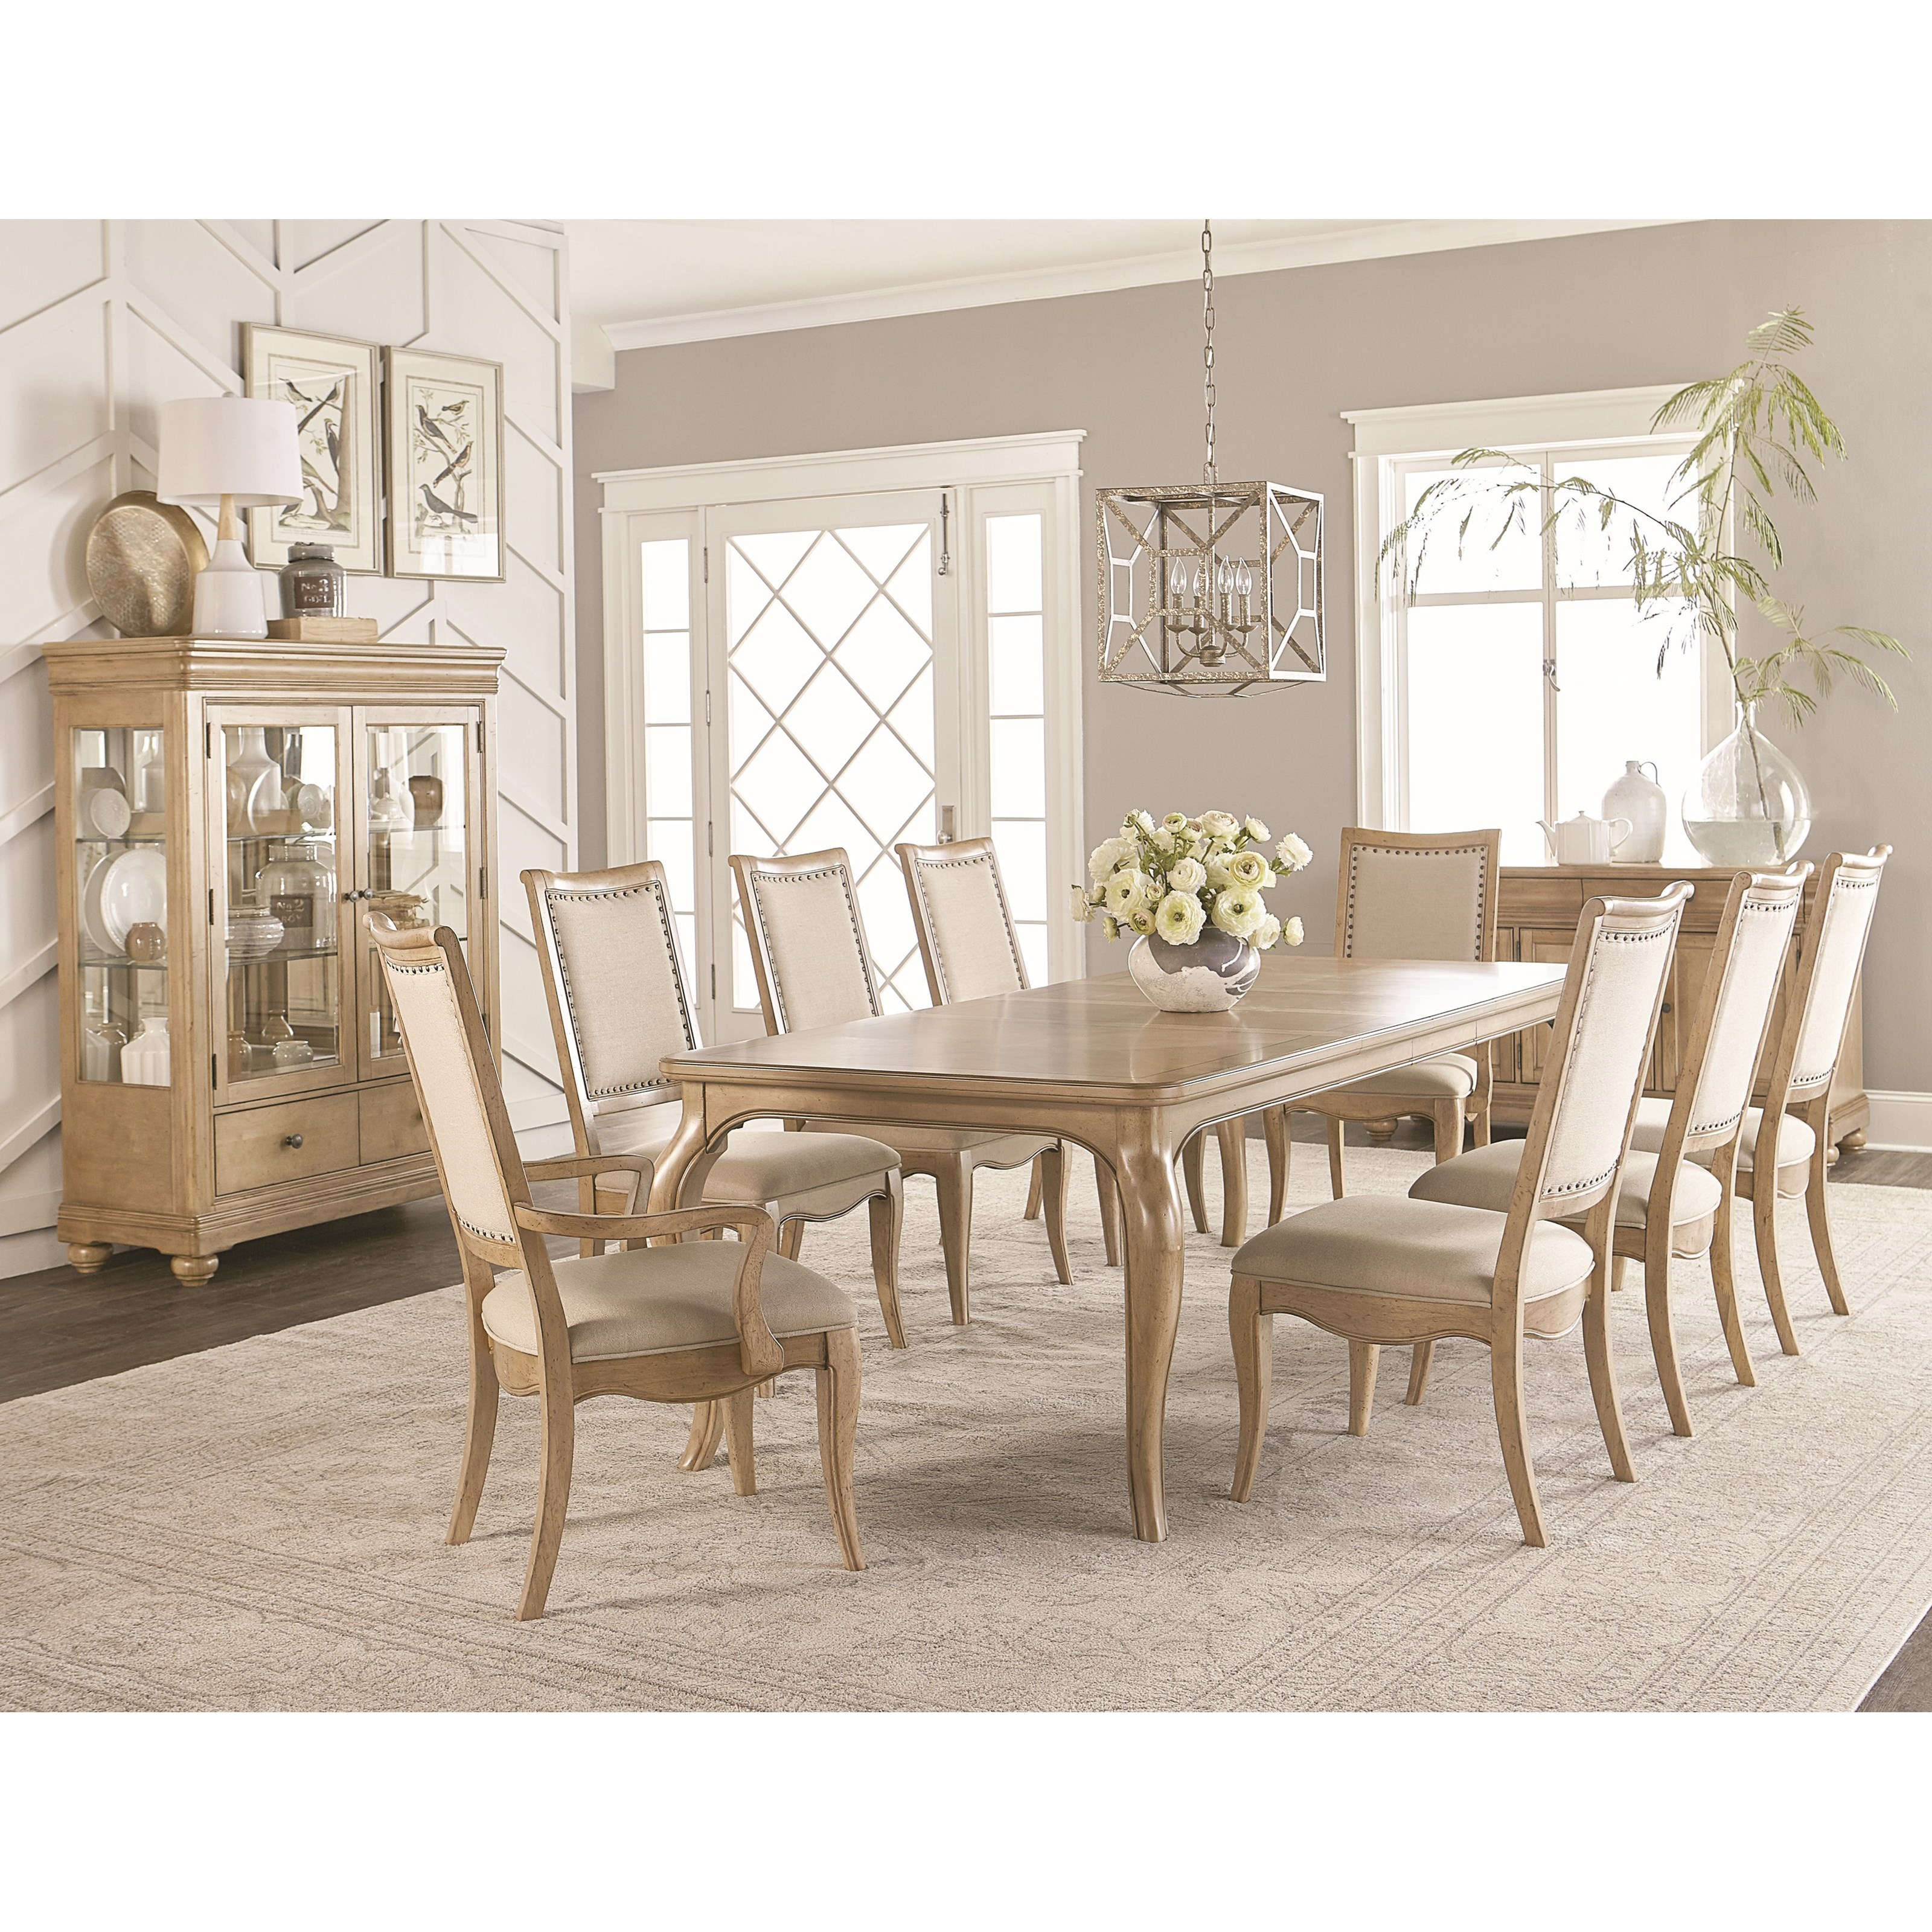 Legacy classic ashby woods dining room group belfort for Legacy classic dining room furniture